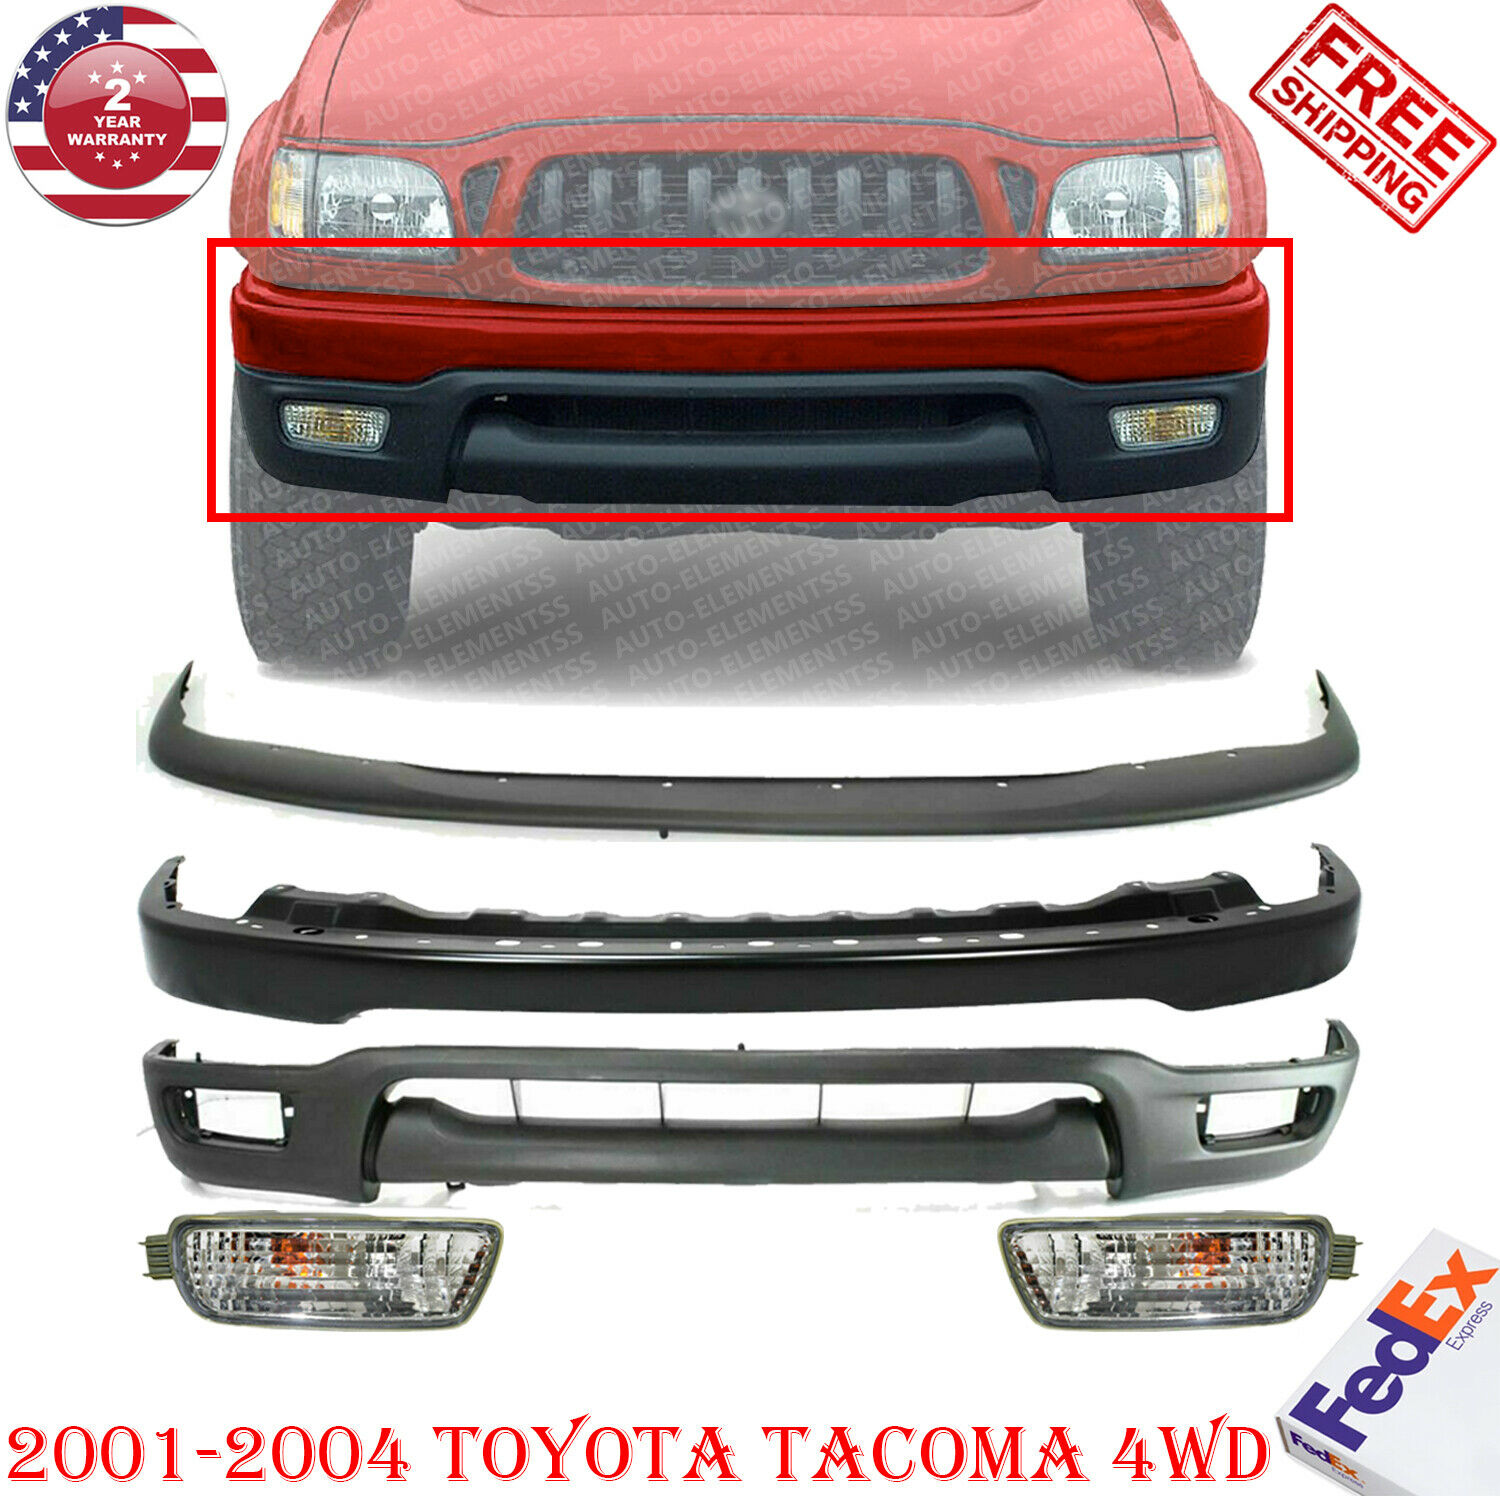 Partslink Number TO1087112 OE Replacement Toyota Tacoma Front Bumper Filler